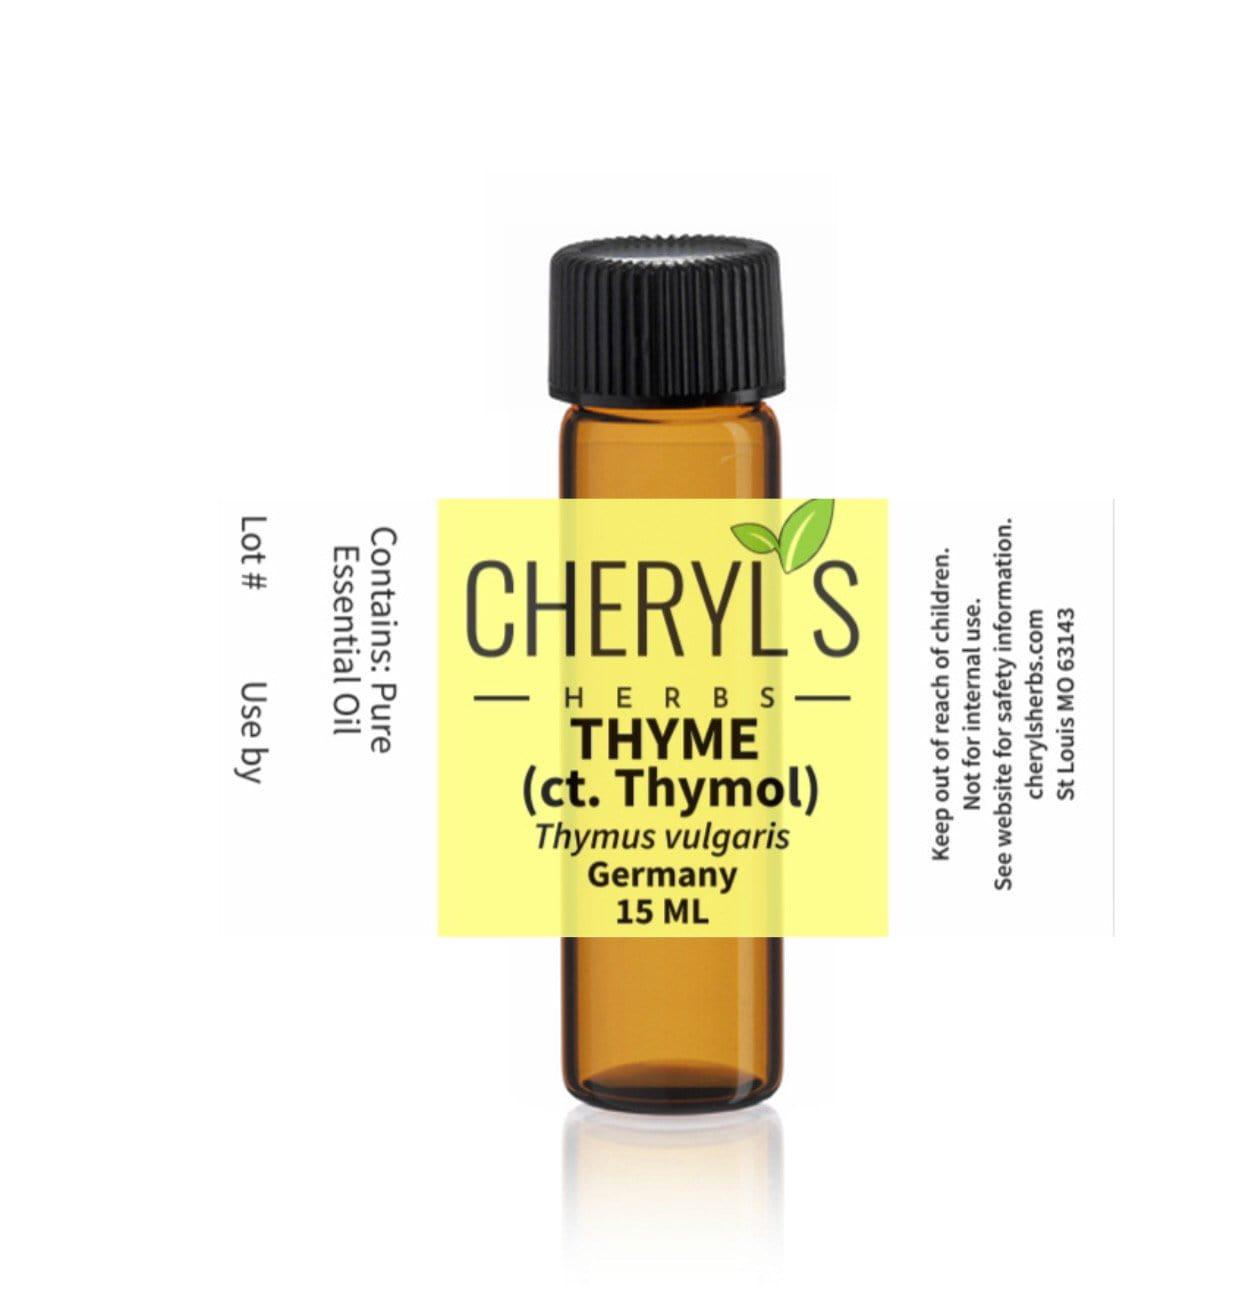 THYME ct. Thymol, RED ESSENTIAL OIL - Cheryls Herbs